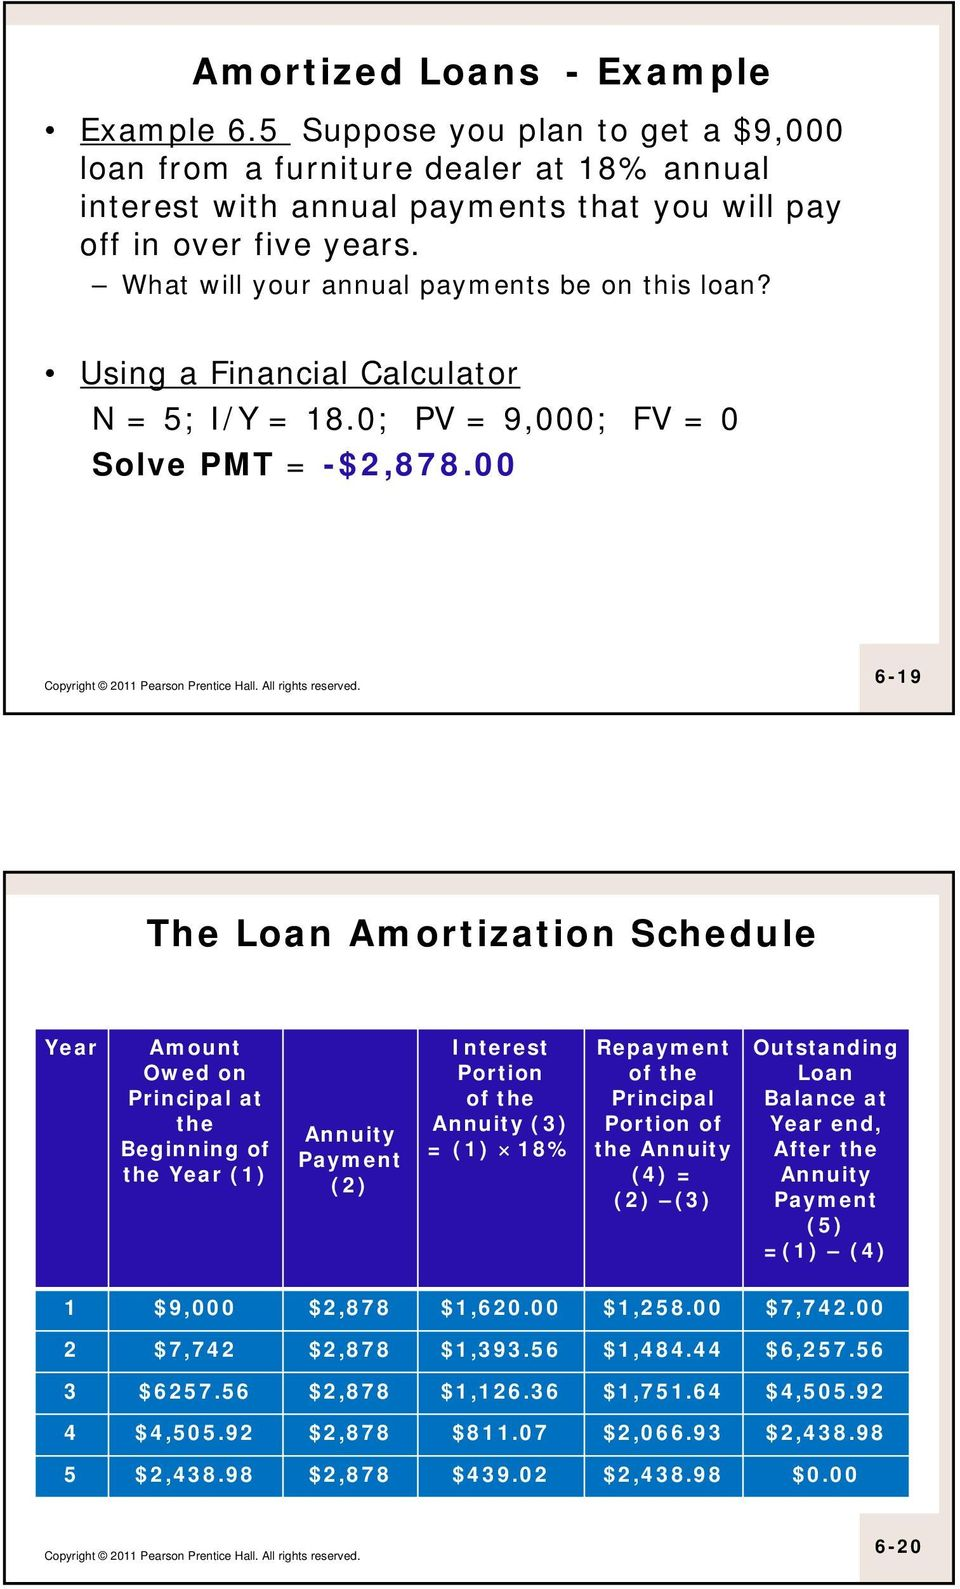 00 6-19 The Loan Amortization Schedule Year Amount Owed on Principal at the Beginning of the Year (1) Annuity Payment (2) Interest Portion of the Annuity (3) = (1) 18% Repayment of the Principal